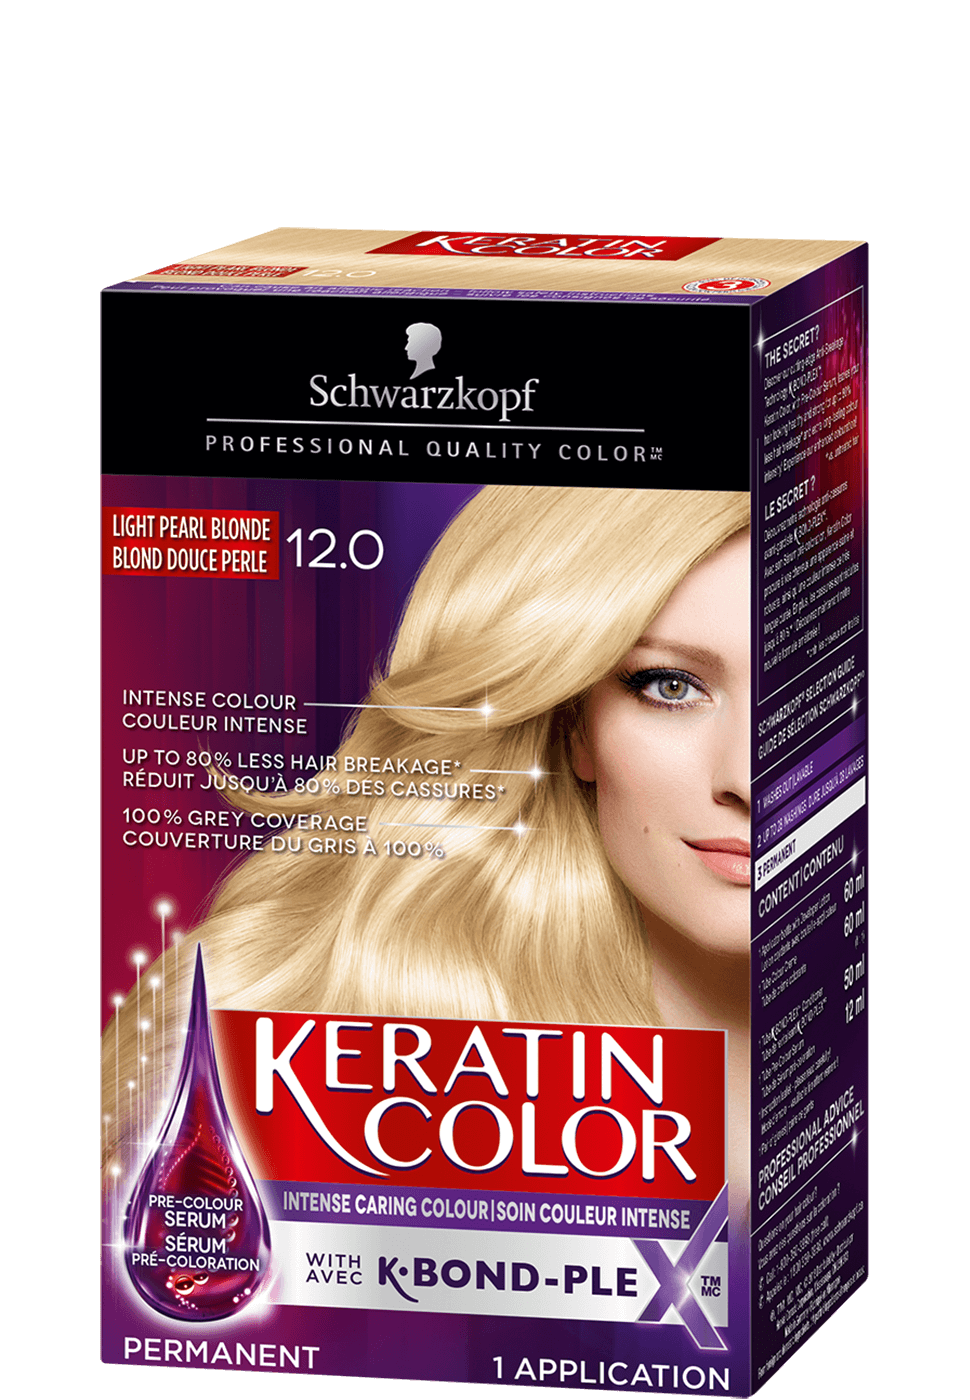 Keratin_Color_en_12_0_970x1400